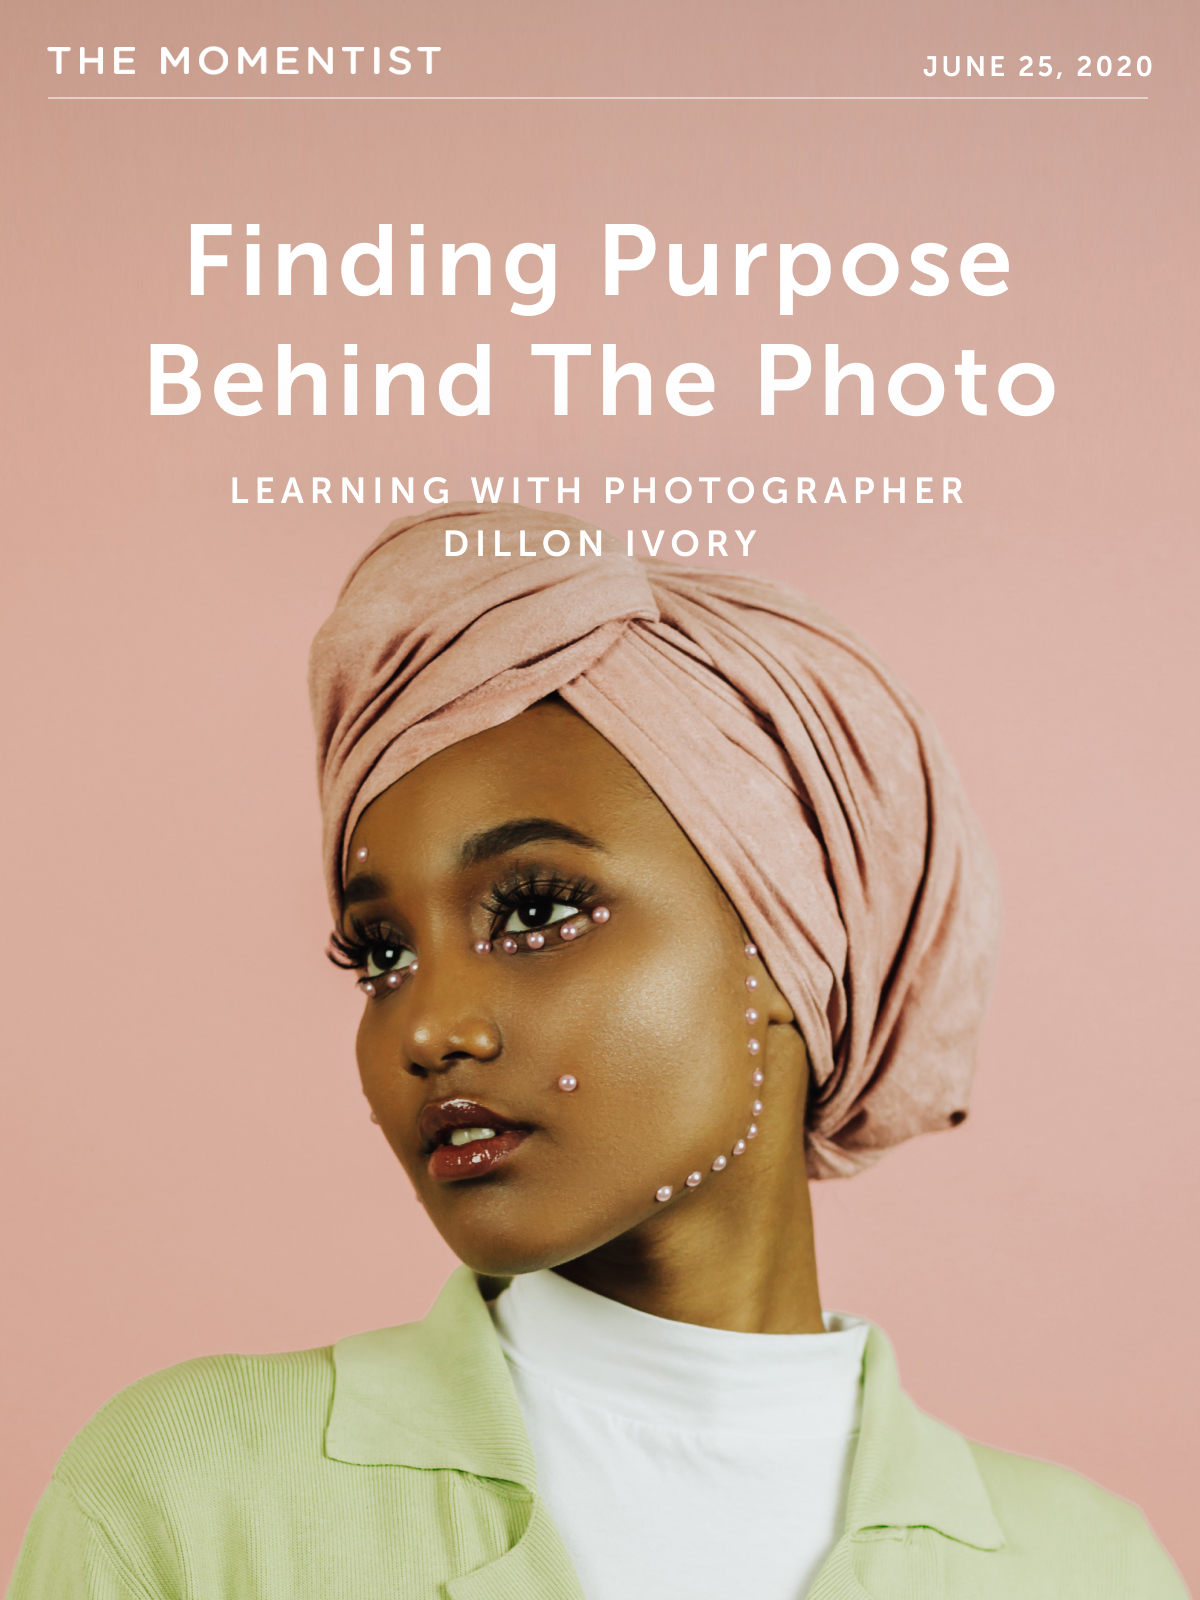 Finding Purpose Behind The Photo: Learning With Photographer Dillon Ivory